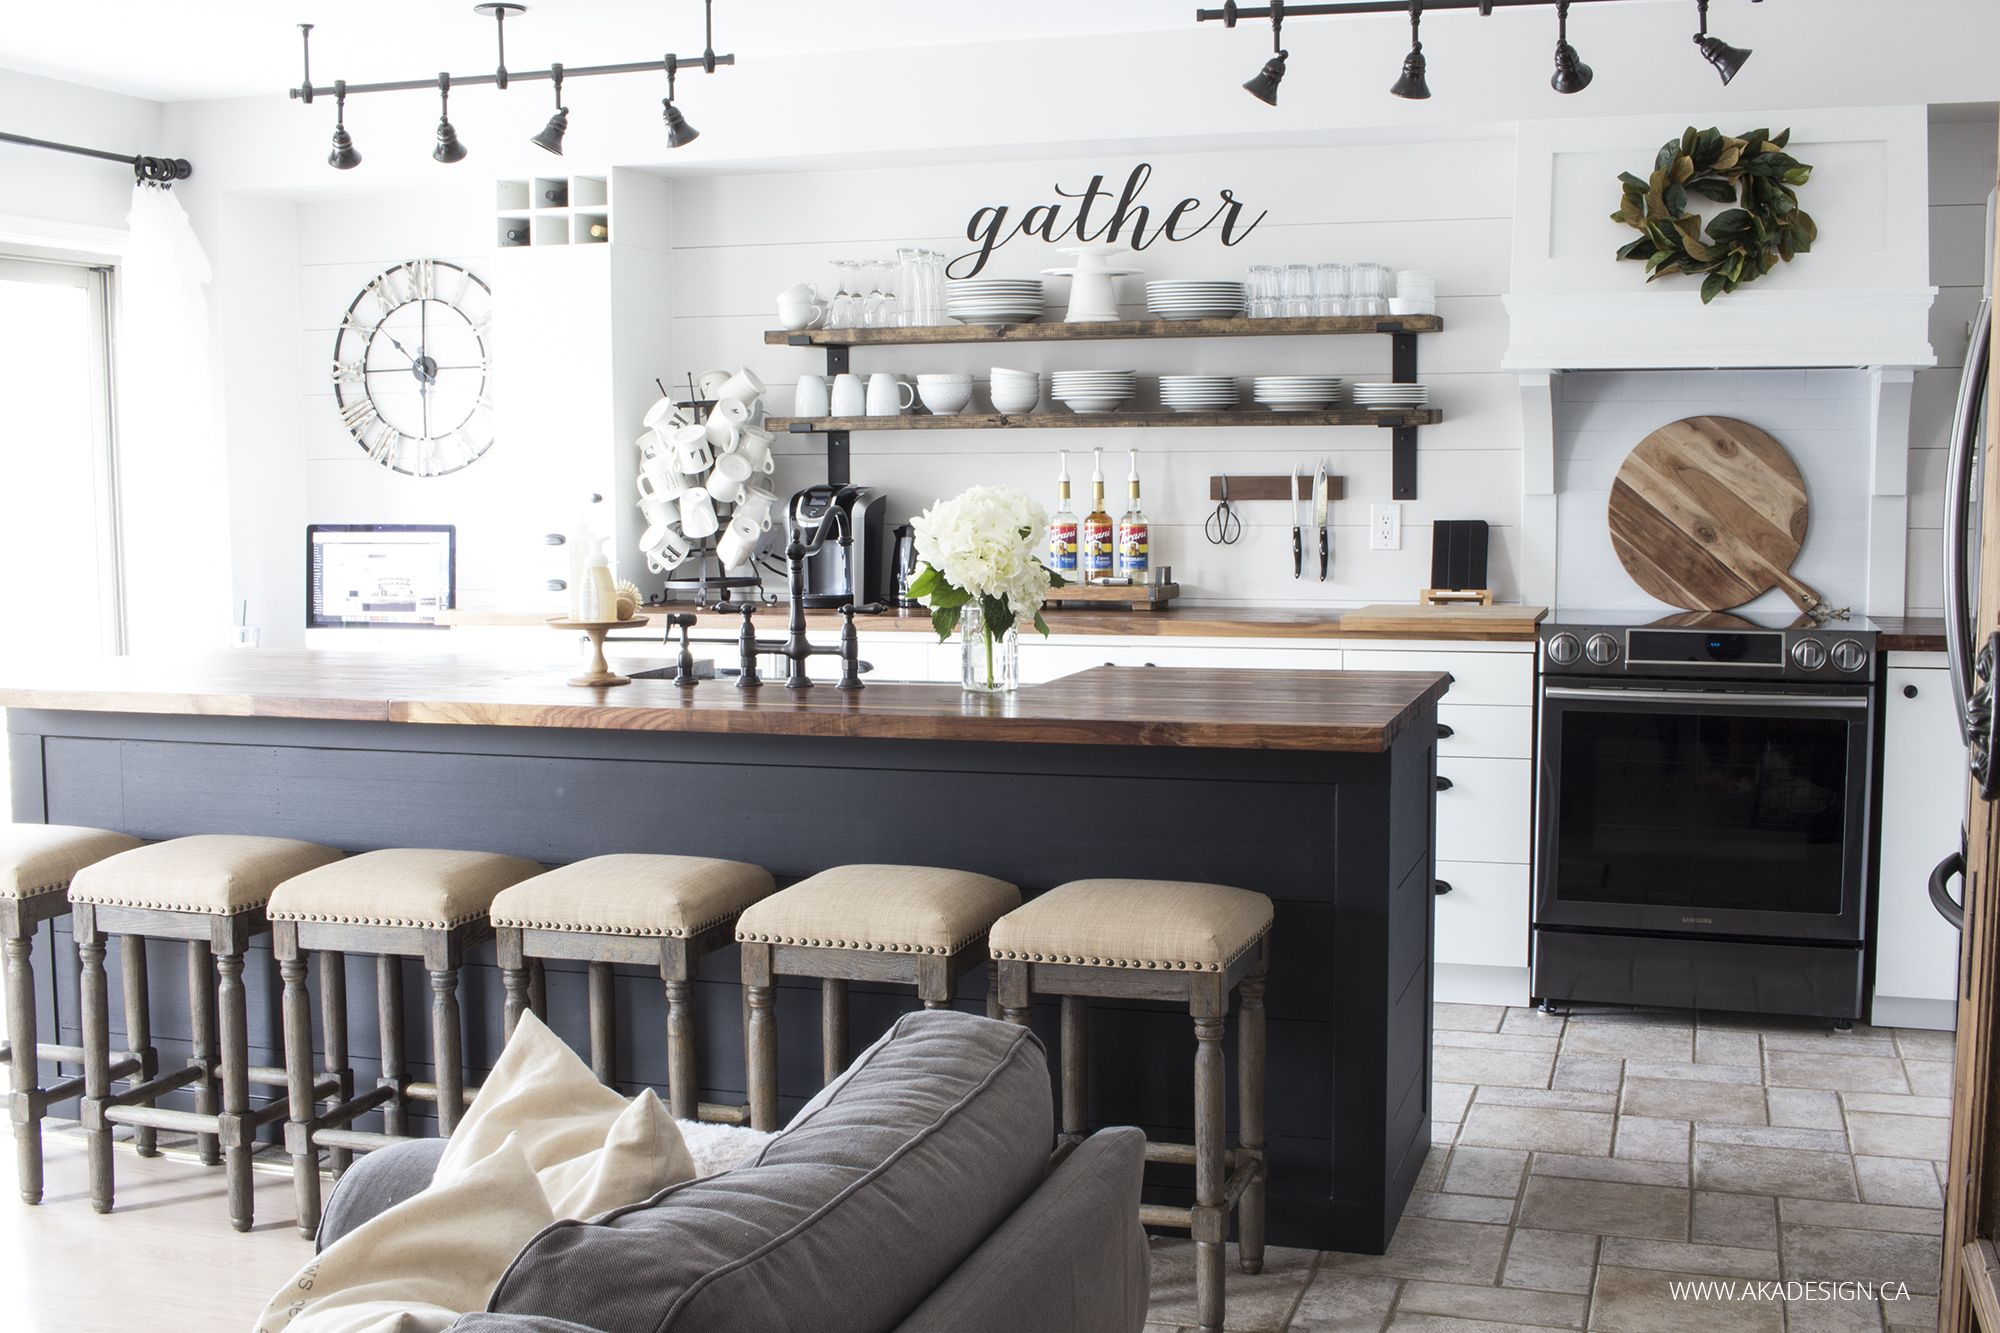 The 70 000 Dream Kitchen Makeover: OUR MODERN FARMHOUSE KITCHEN MAKEOVER